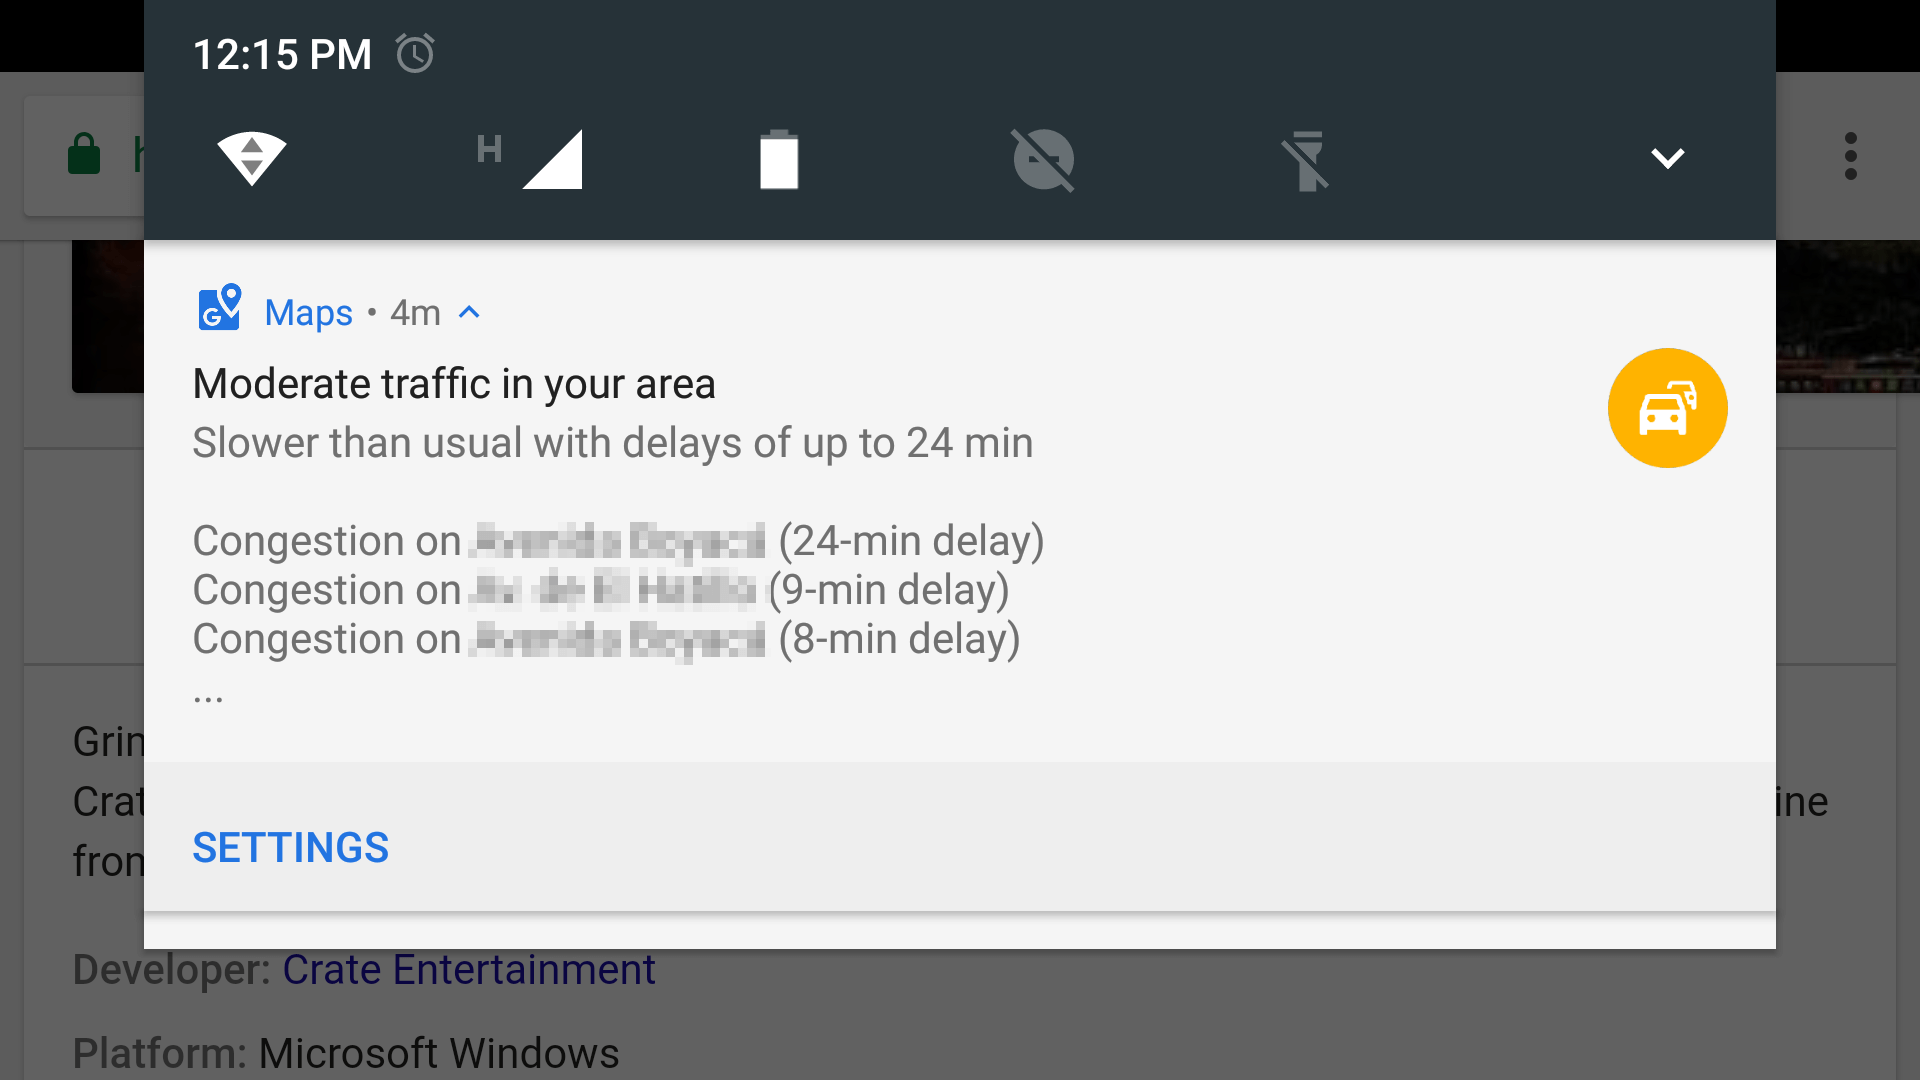 A context-based message from a smartphone.